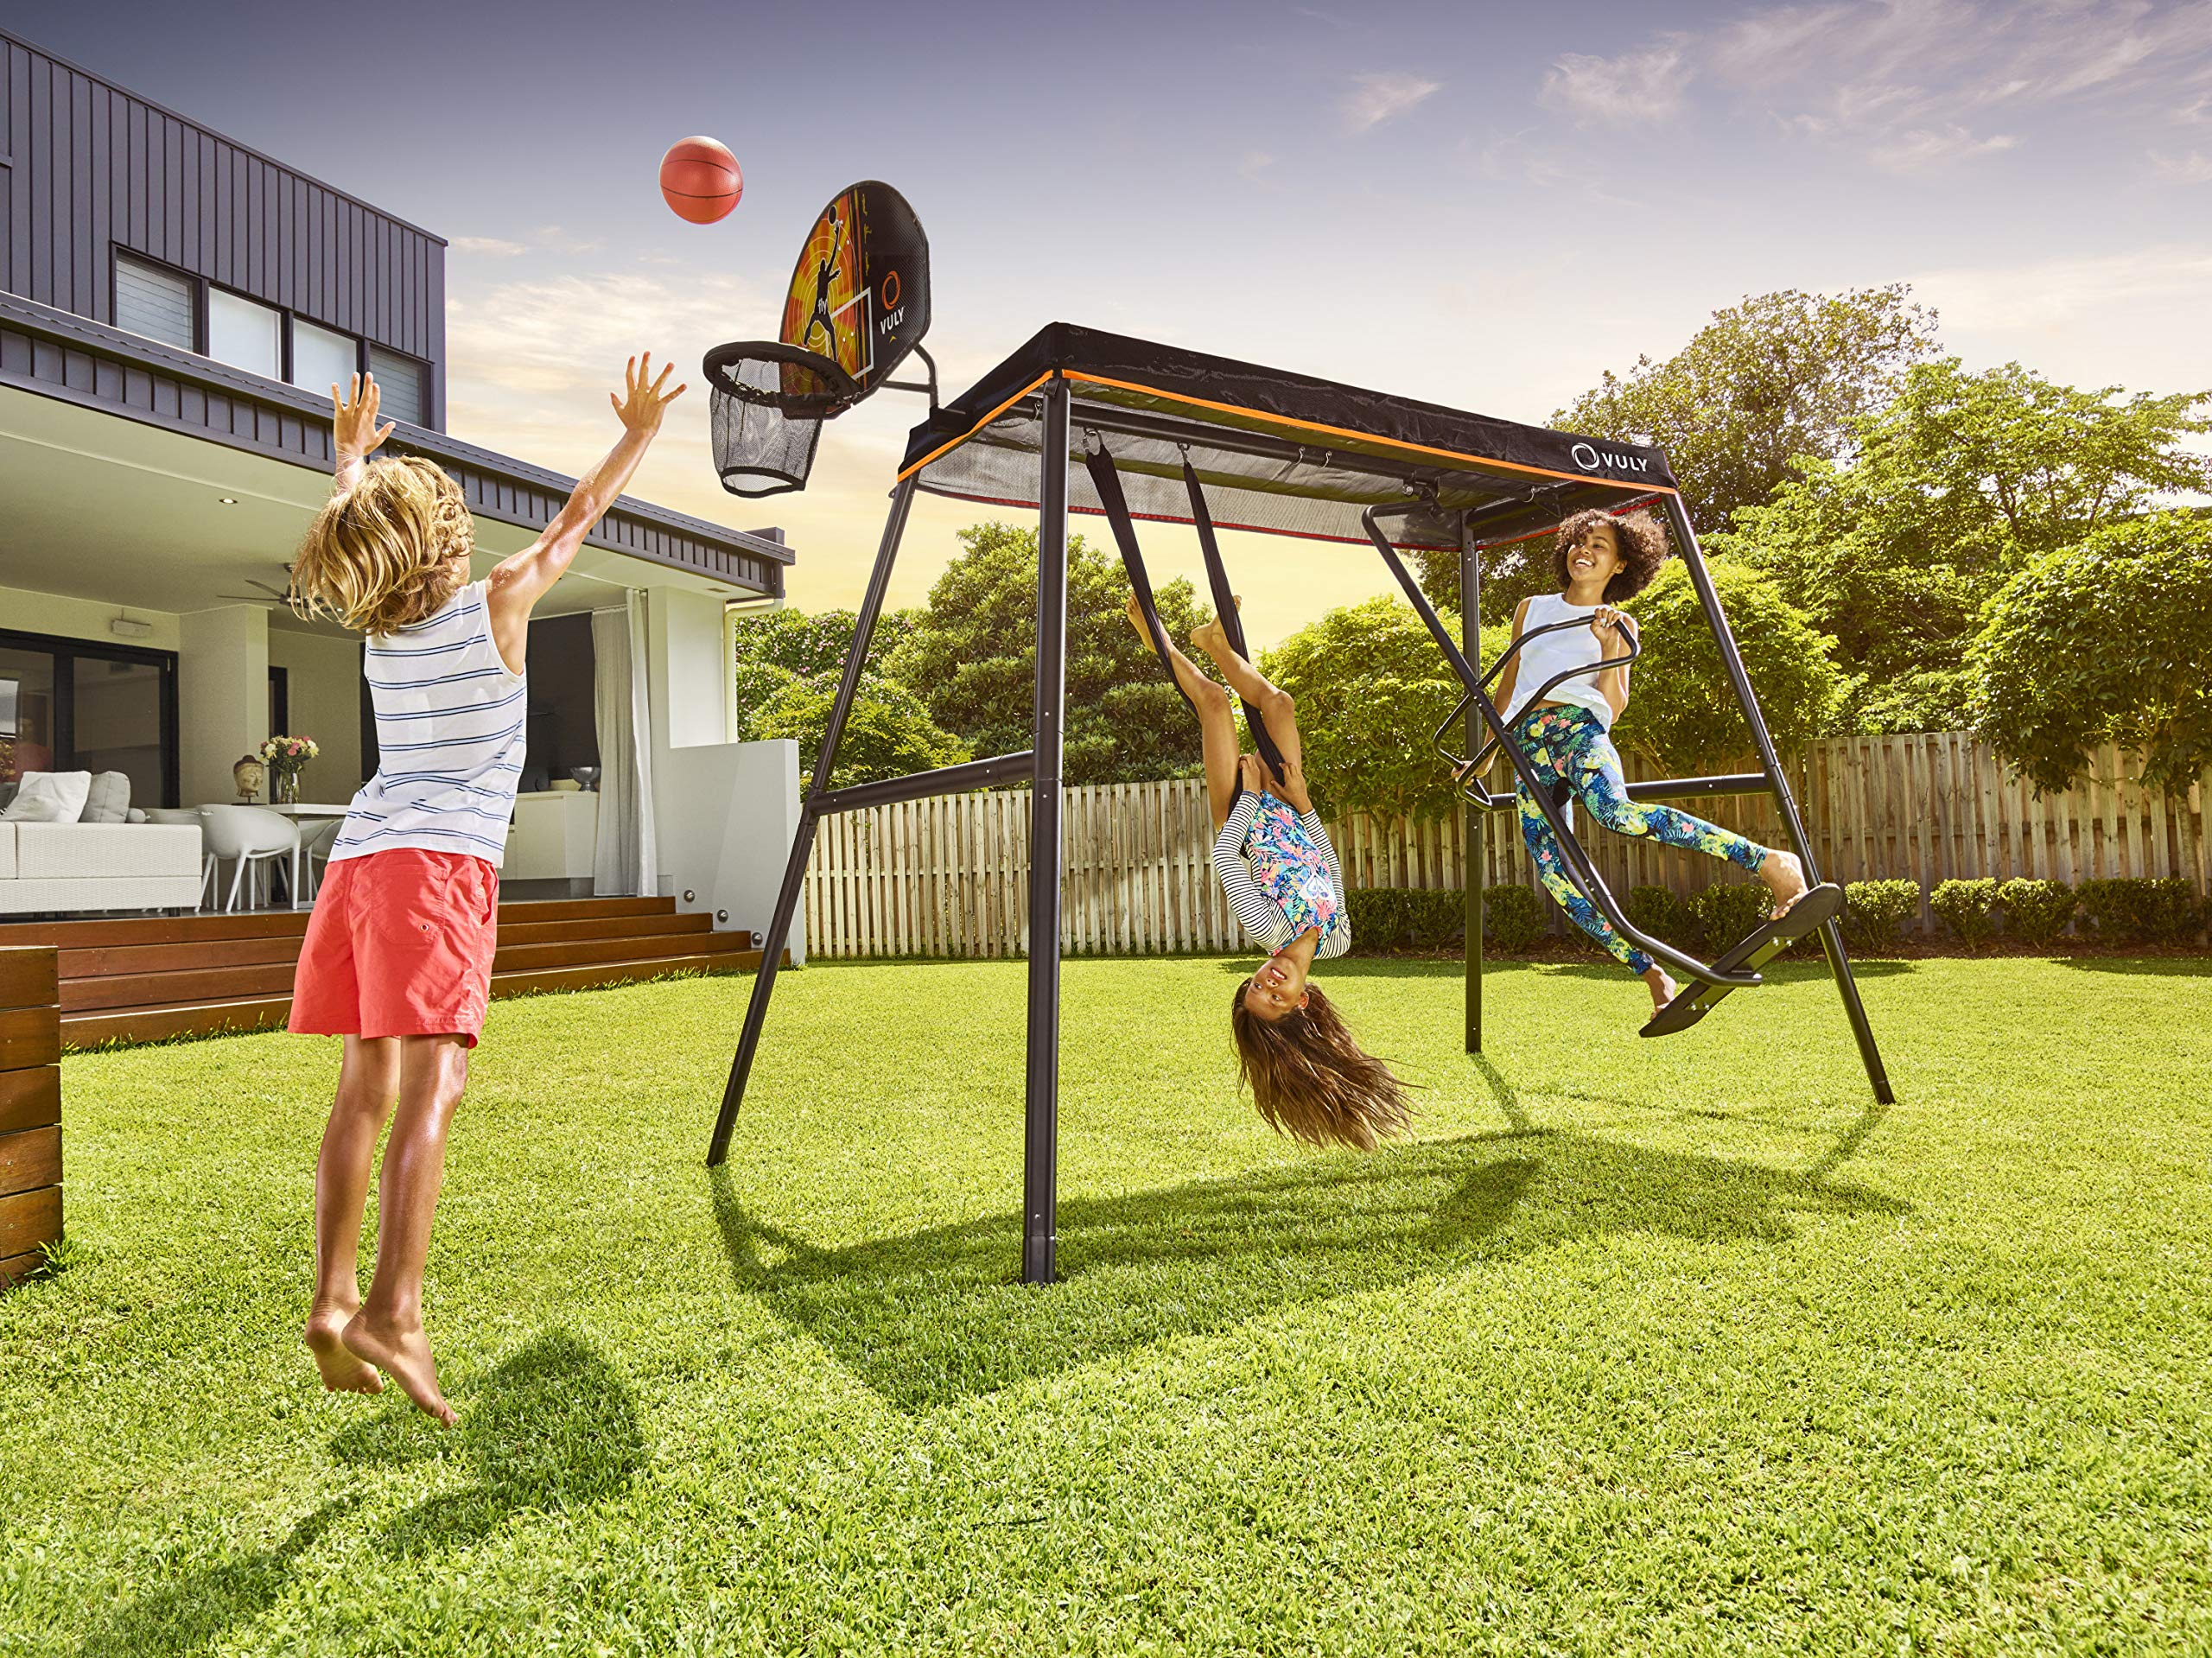 Vuly Basketball Hoop and Ball Set Compatible Trampolines 360 Swingsets by Vuly (Image #5)